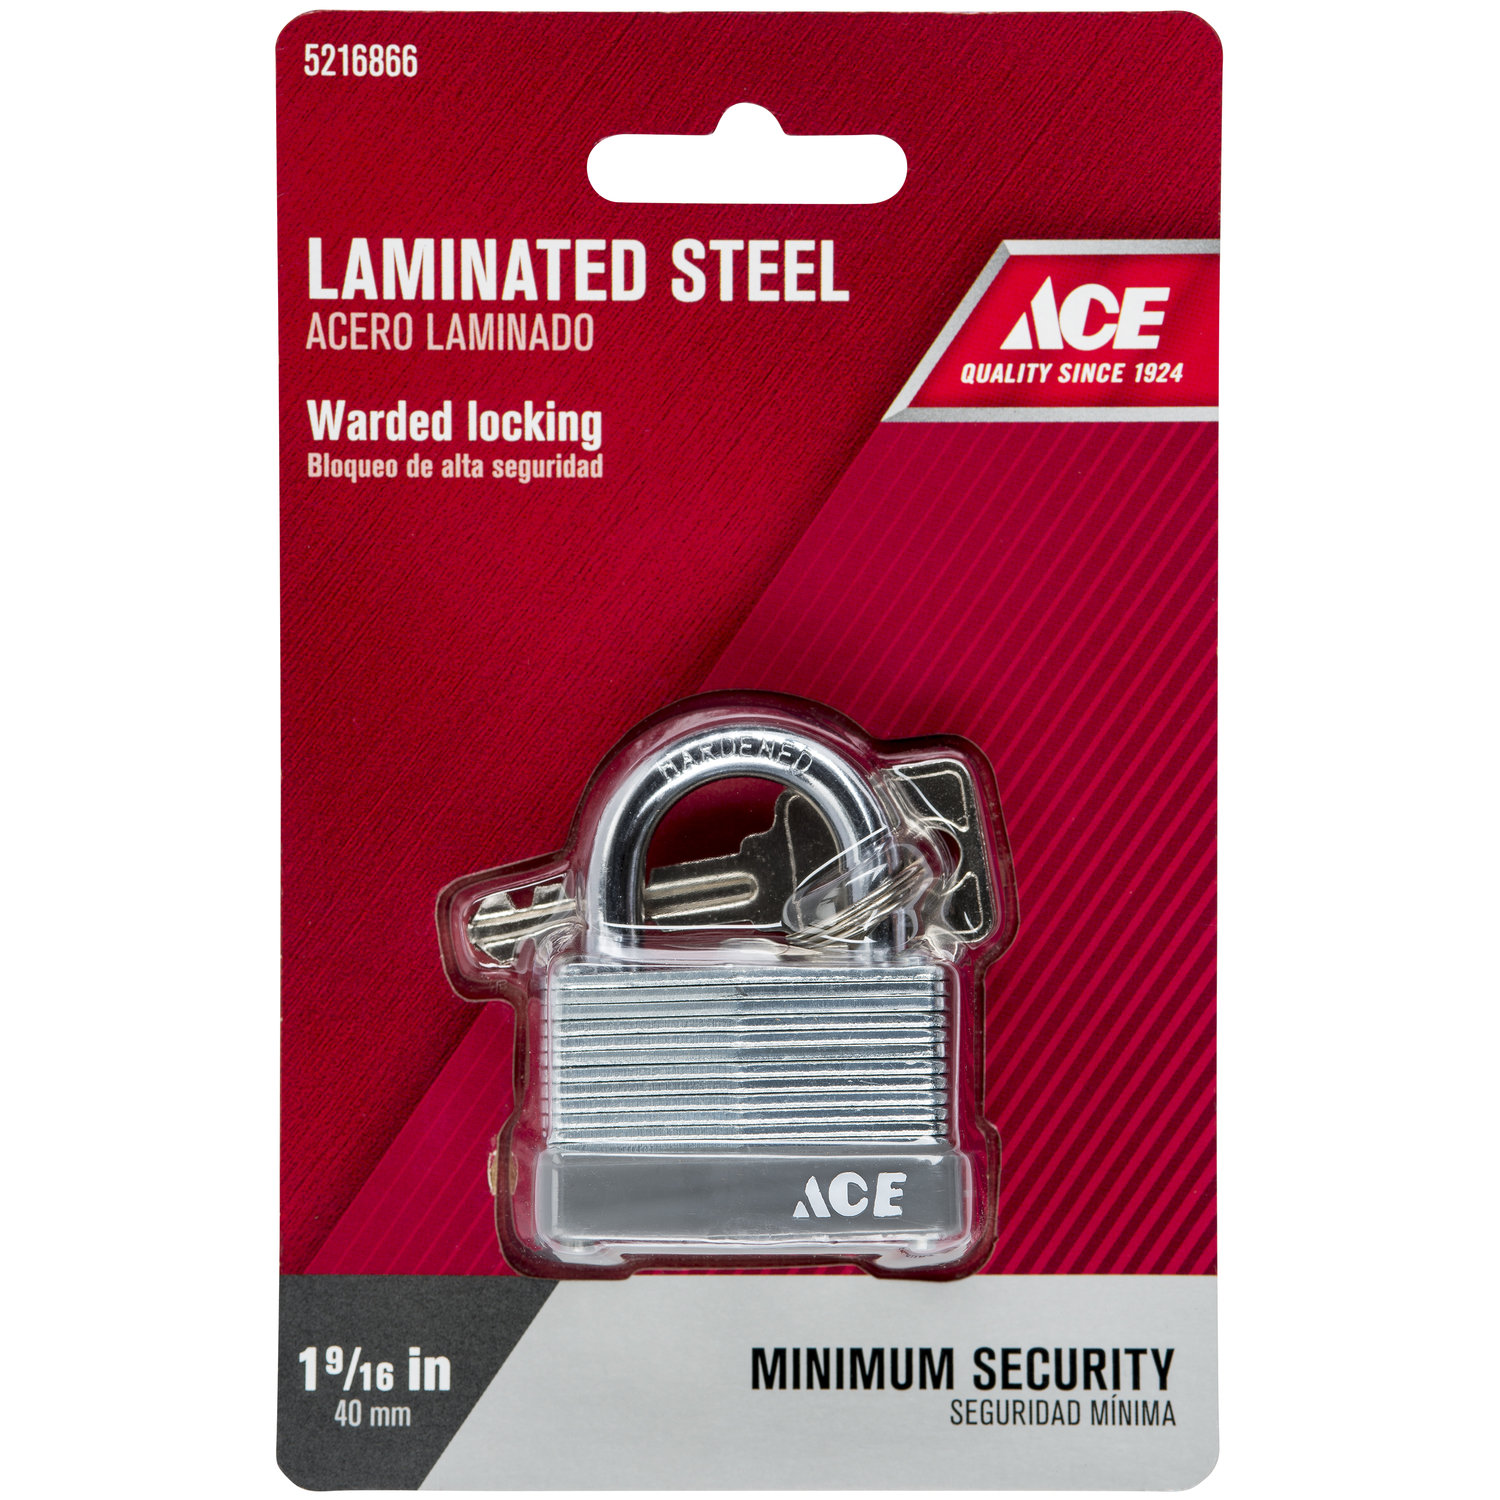 Ace  1-1/2 in. W x 1 in. H Warded Locking  Laminated Steel  Padlock  1 pk